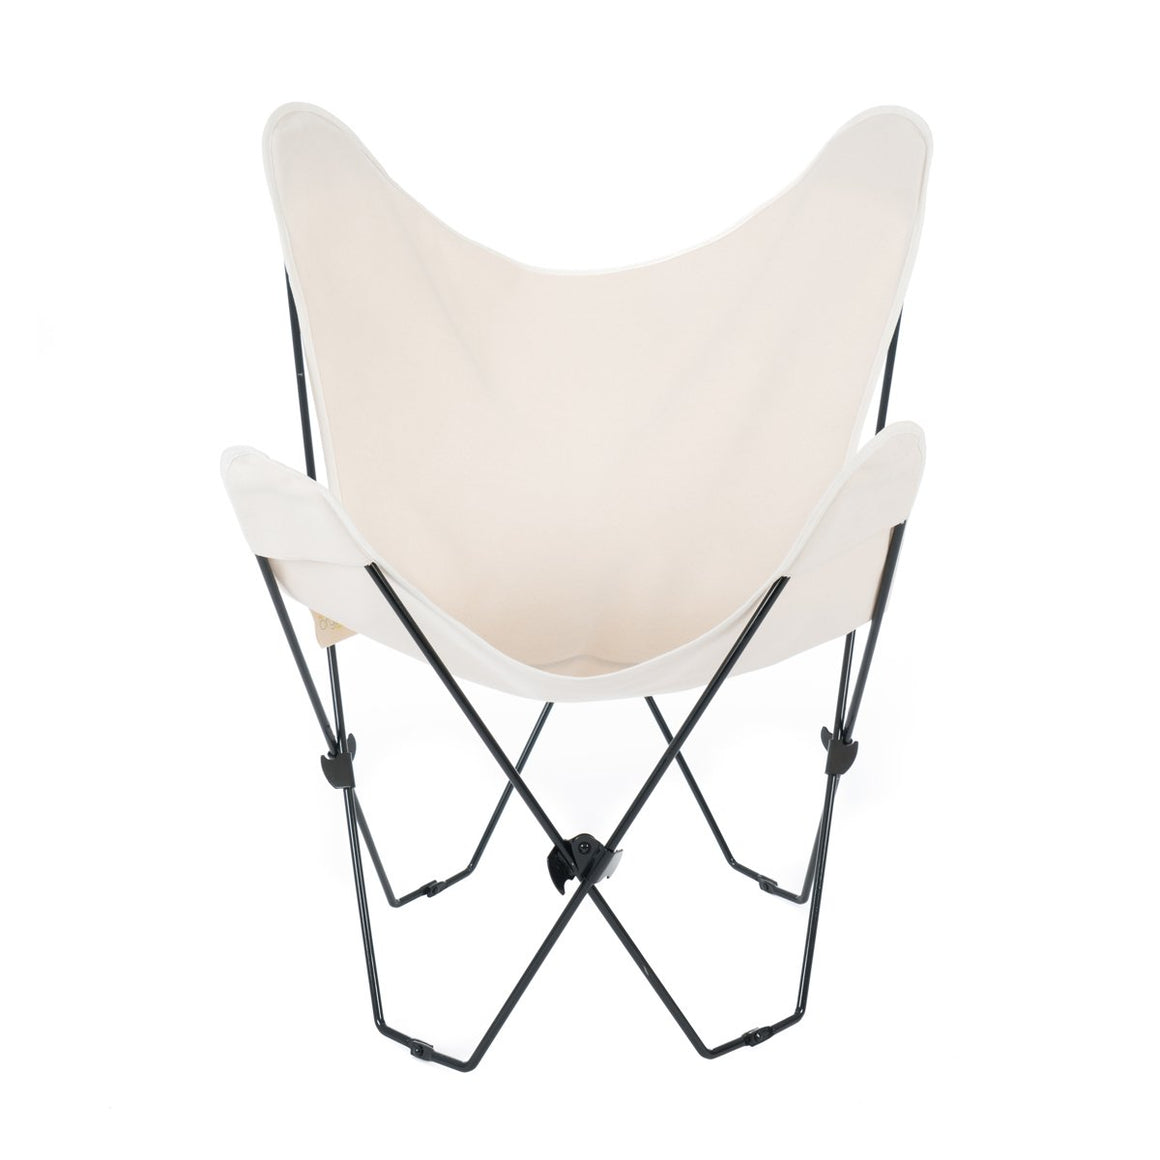 Bio Butterfly Chair- ON BACKORDER UNTIL 3/7/21